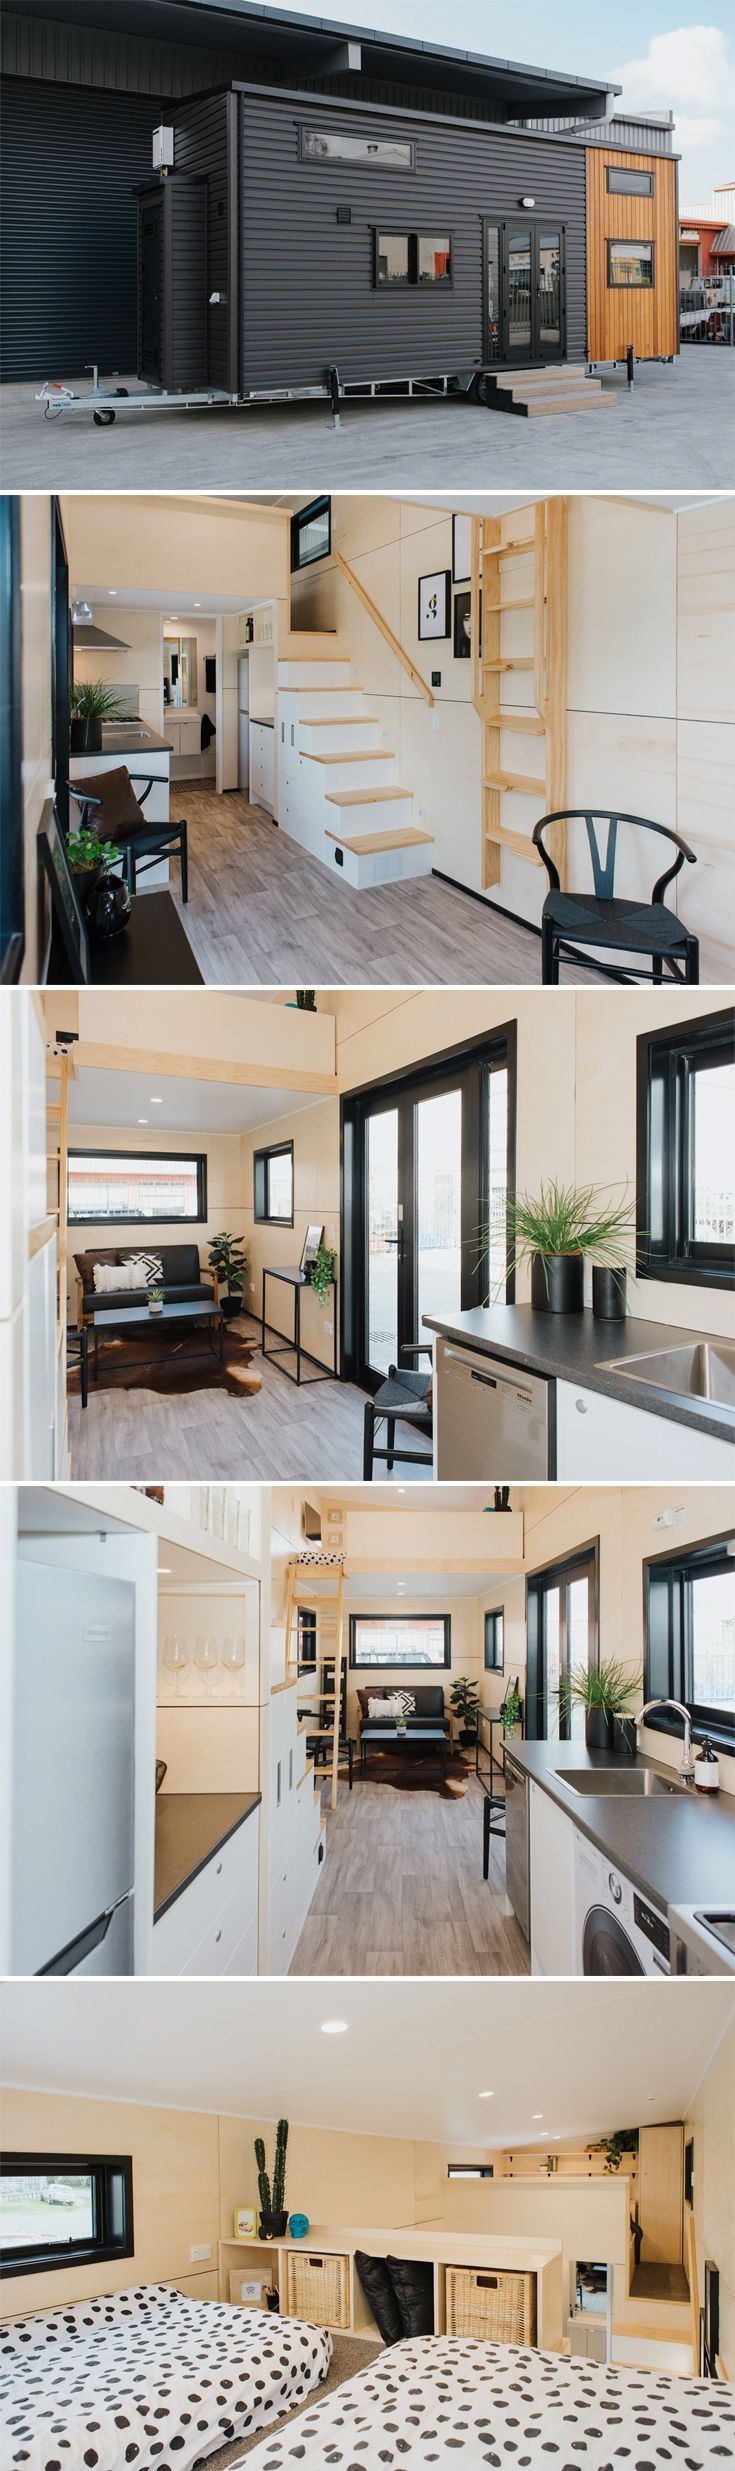 Page not found - Tiny Living #smallremodel From New Zealand tiny house builder Build Tiny is the Kingfisher Tiny House, a completely off-grid model custom built for a client that will use it as a holiday home on a beach north of Auckland. #tinylivingideas